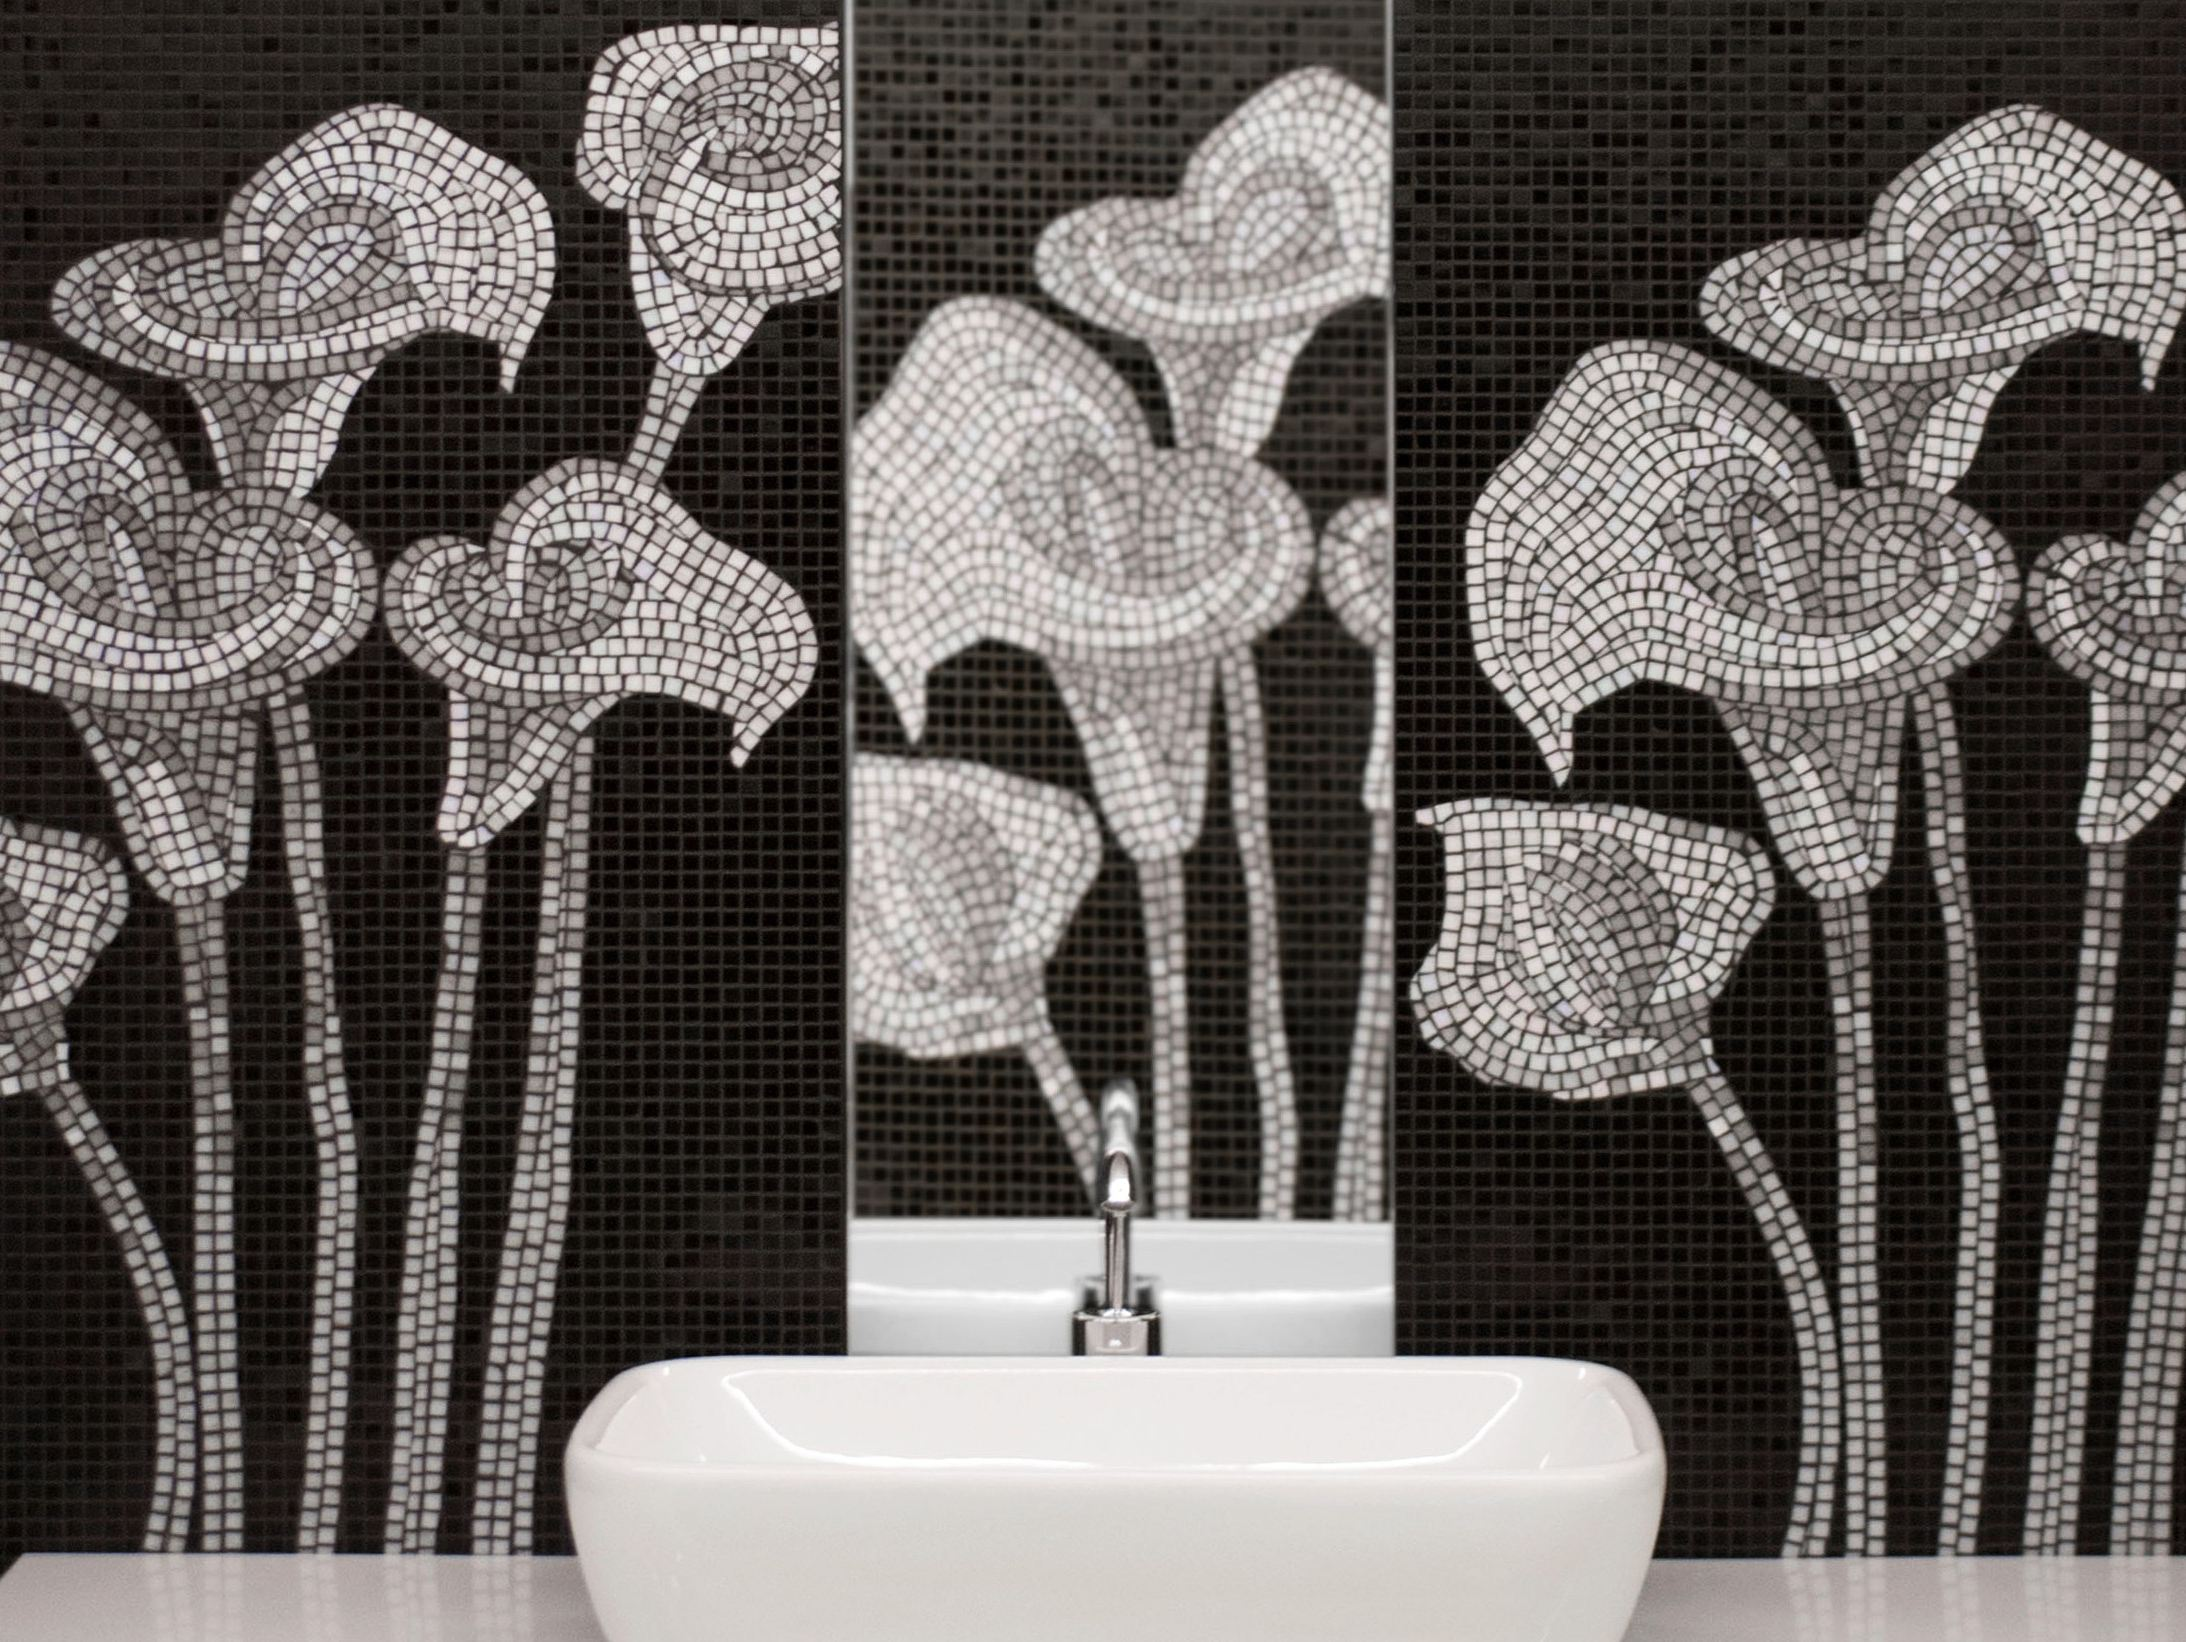 Mosaico in vetro artistic mosaic by trend group for Mosaico group